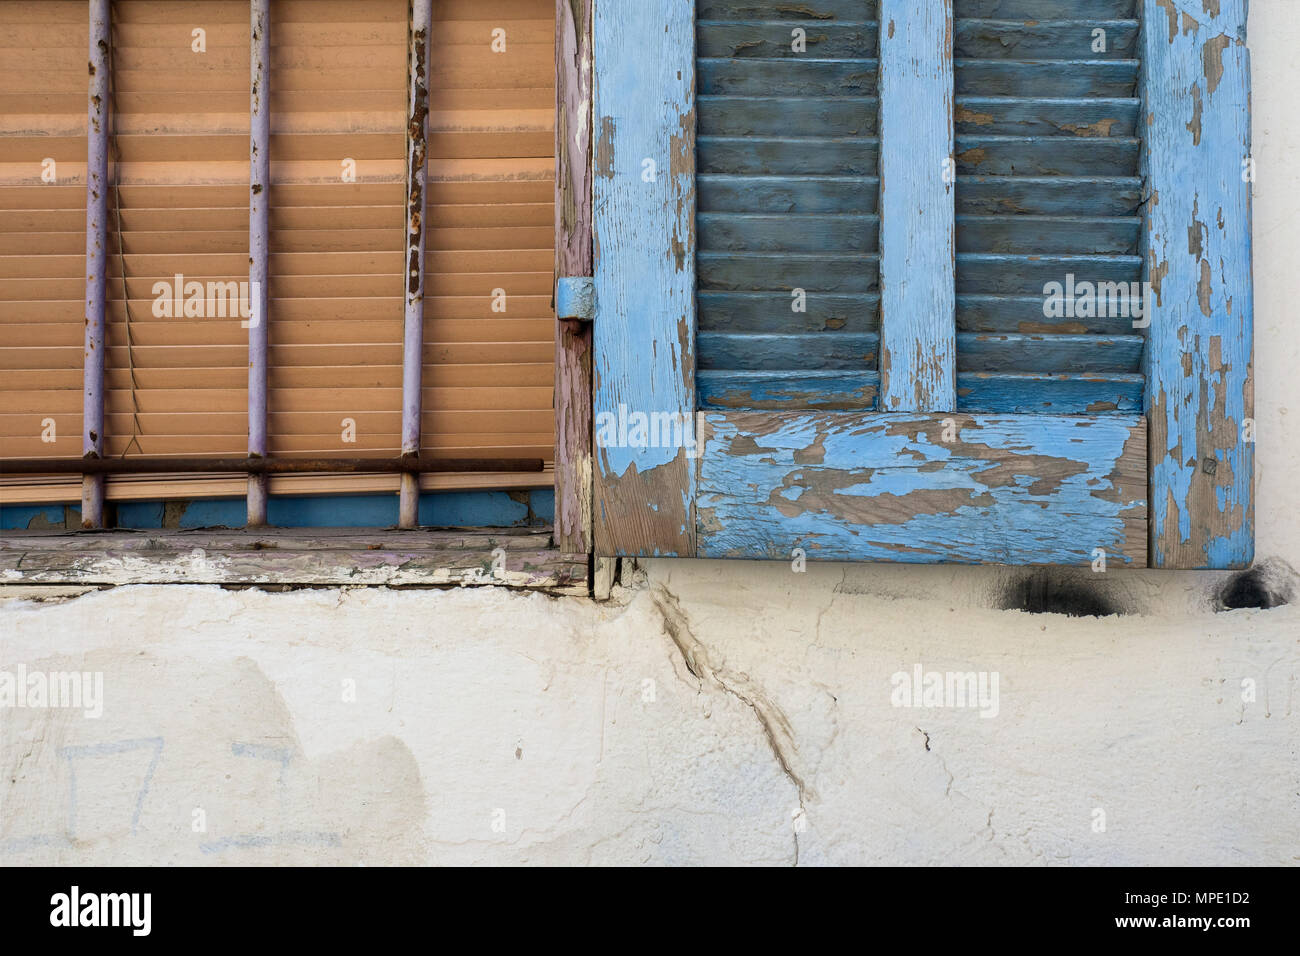 Old Vintage Wooden Shutter Doors Painted In Blue Paint Fall Off And Wooden Blinds Are Brown The Old Window On The Wall With Cracks Stock Photo Alamy